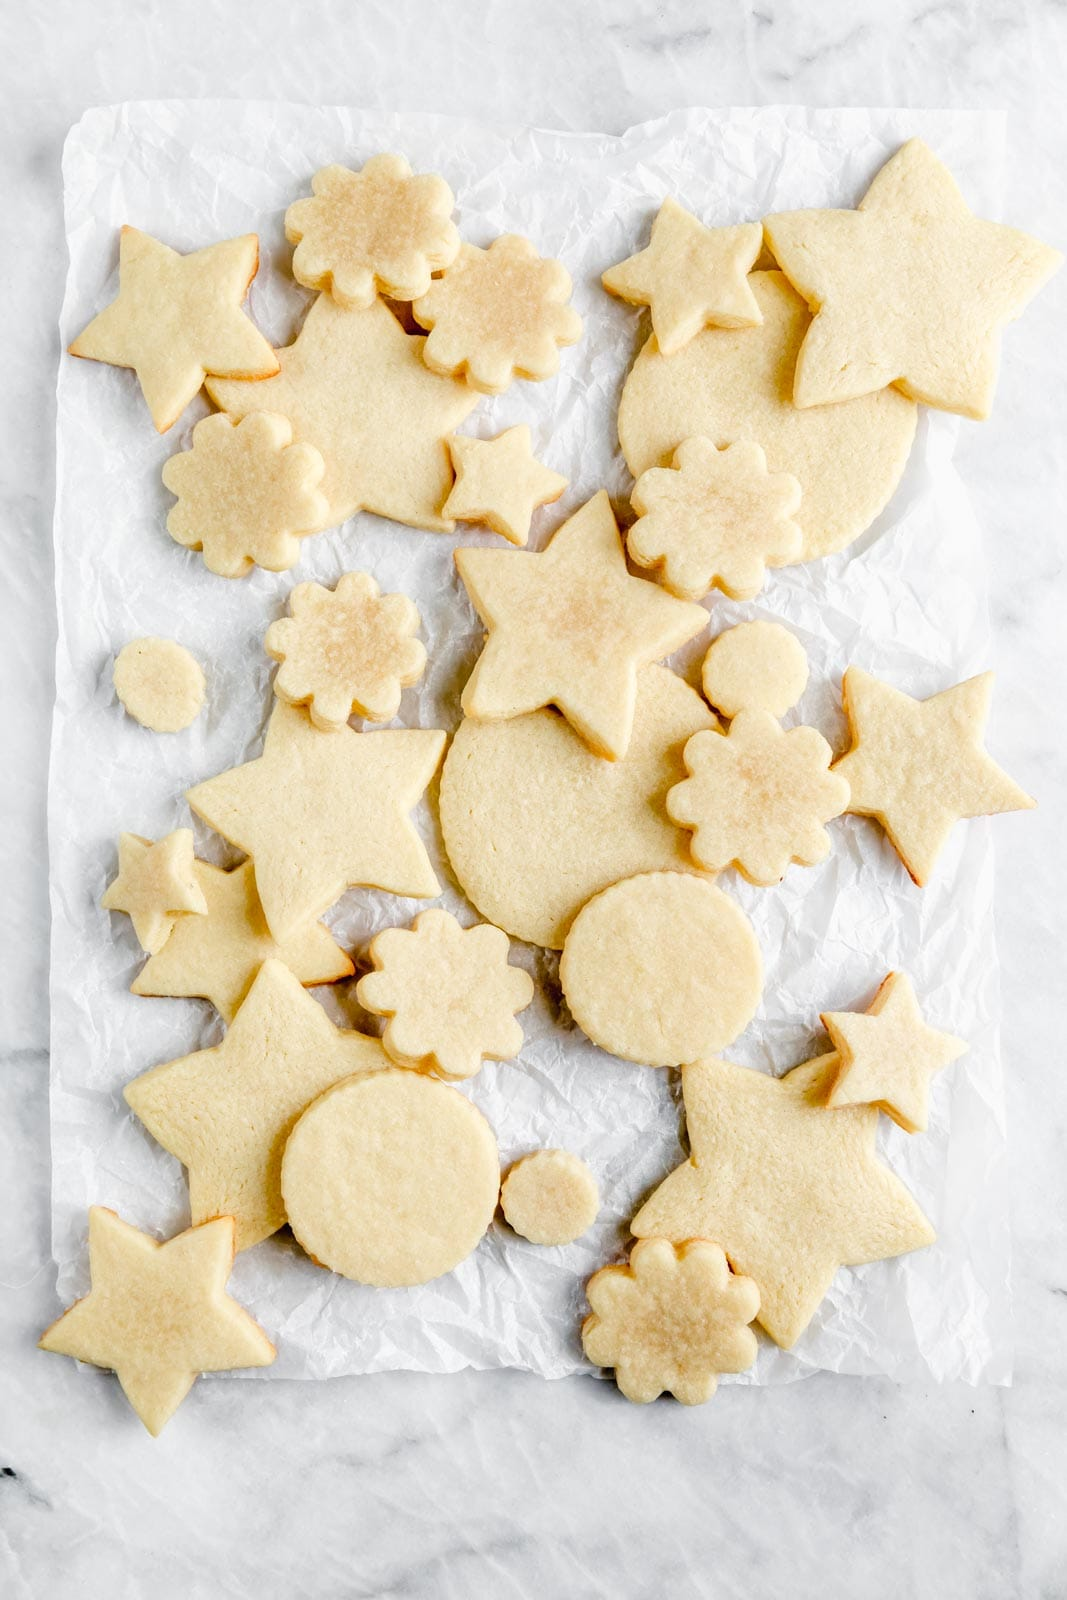 Get back to basics wtih these perfect cut out sugar cookie. Dense, chewy, and melt in your mouth buttery, we promise you won't be disappointed!